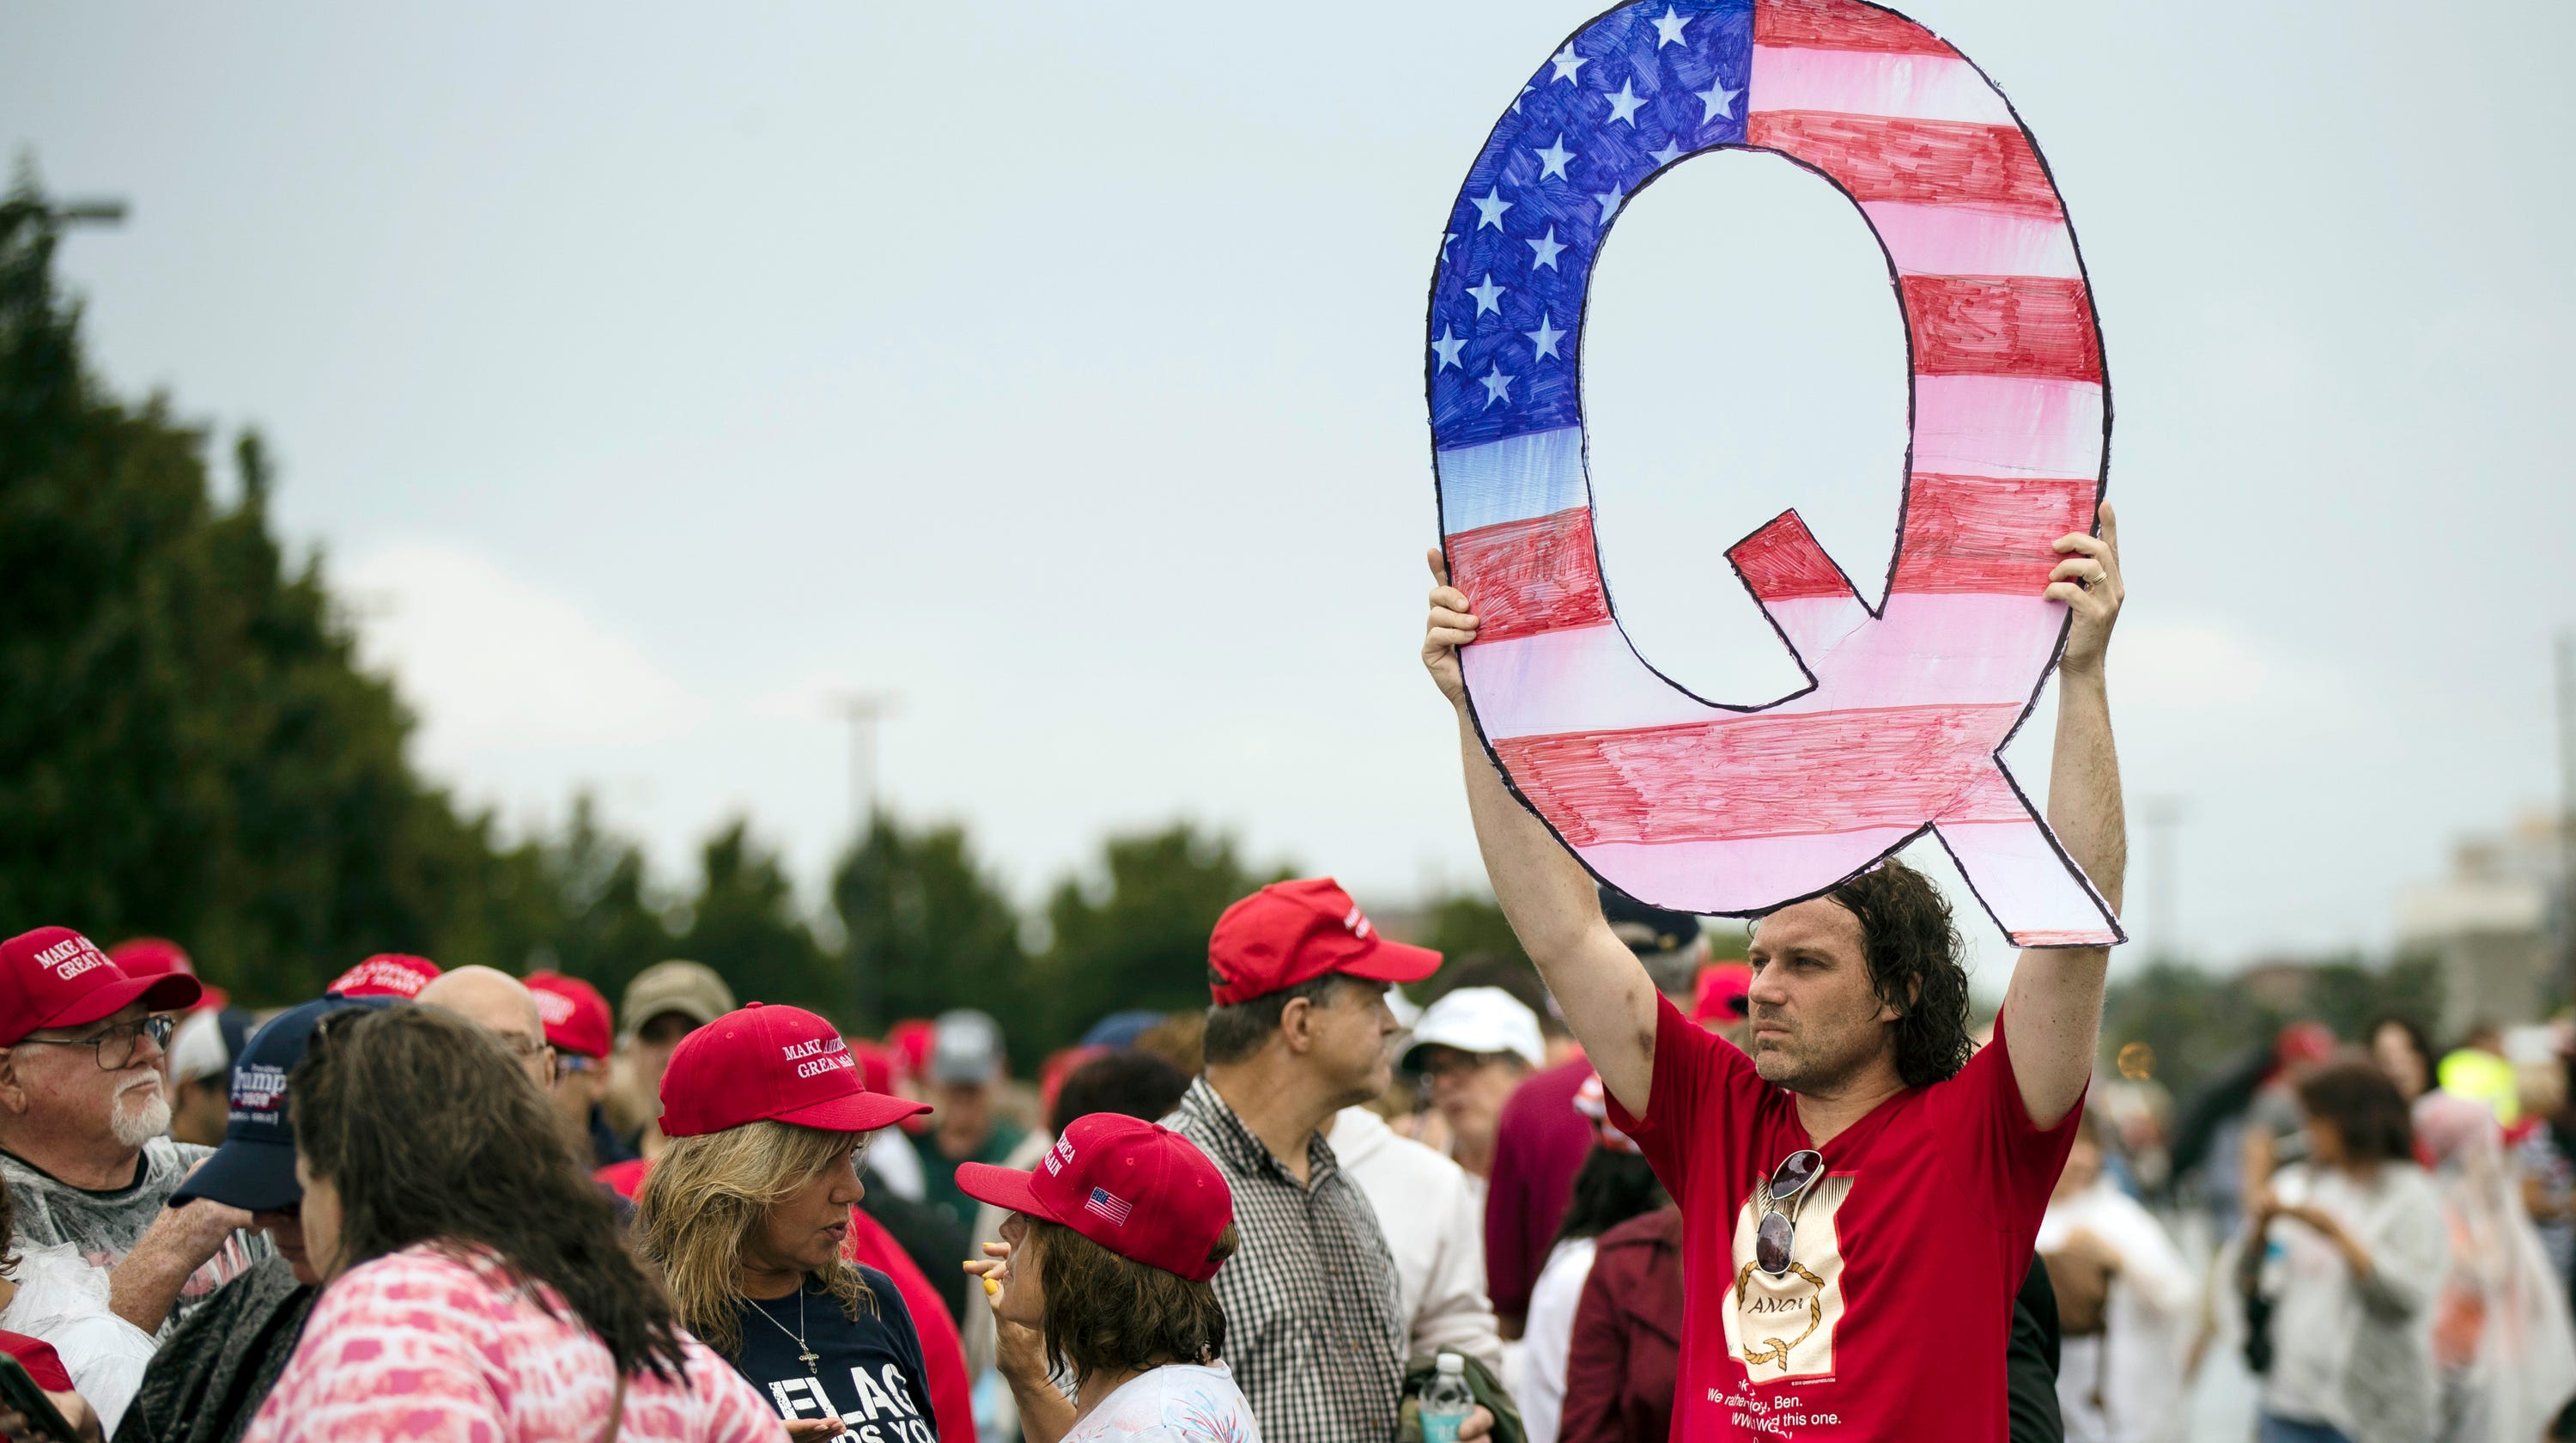 Two Arizona arrests have ties to QAnon conspiracy theory movement